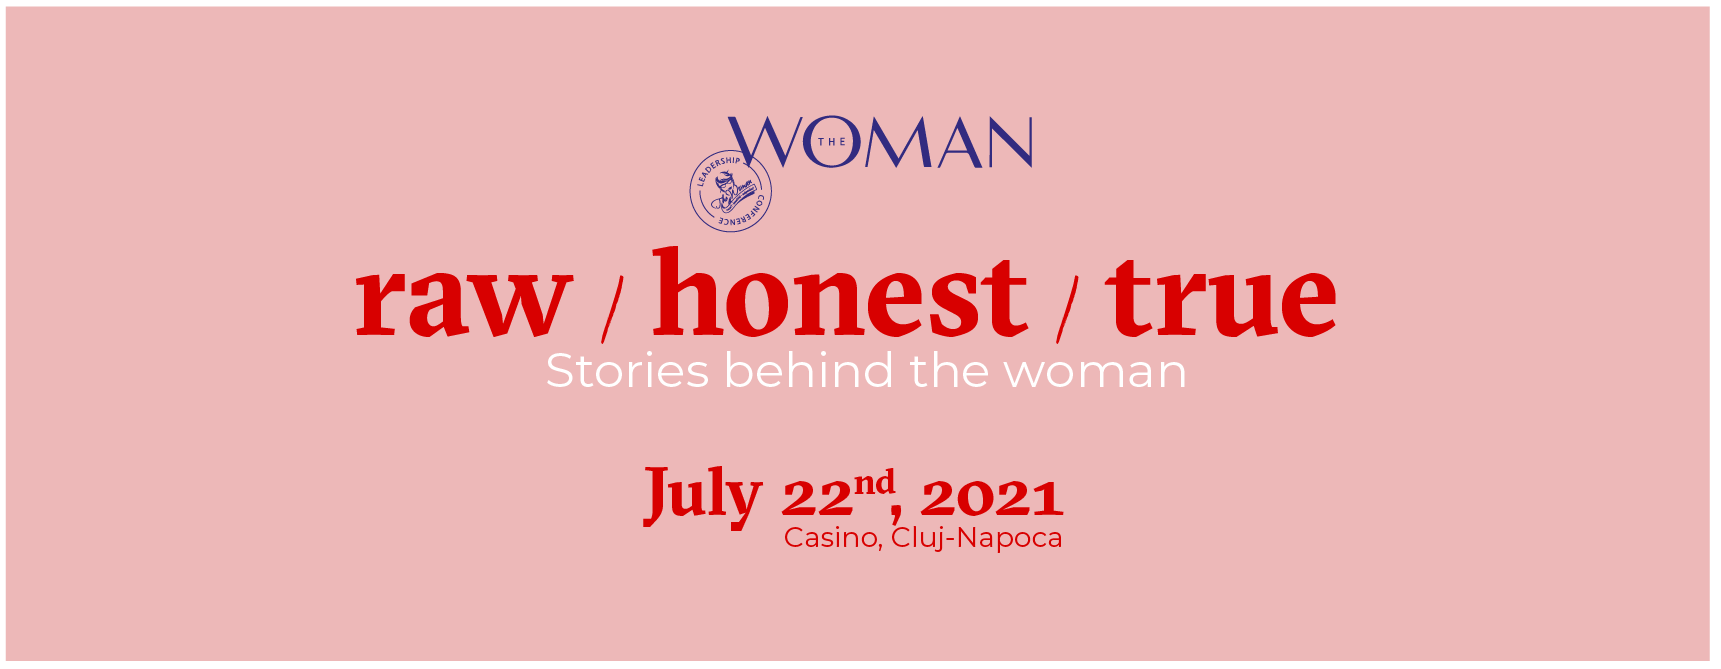 THE WOMAN 2021